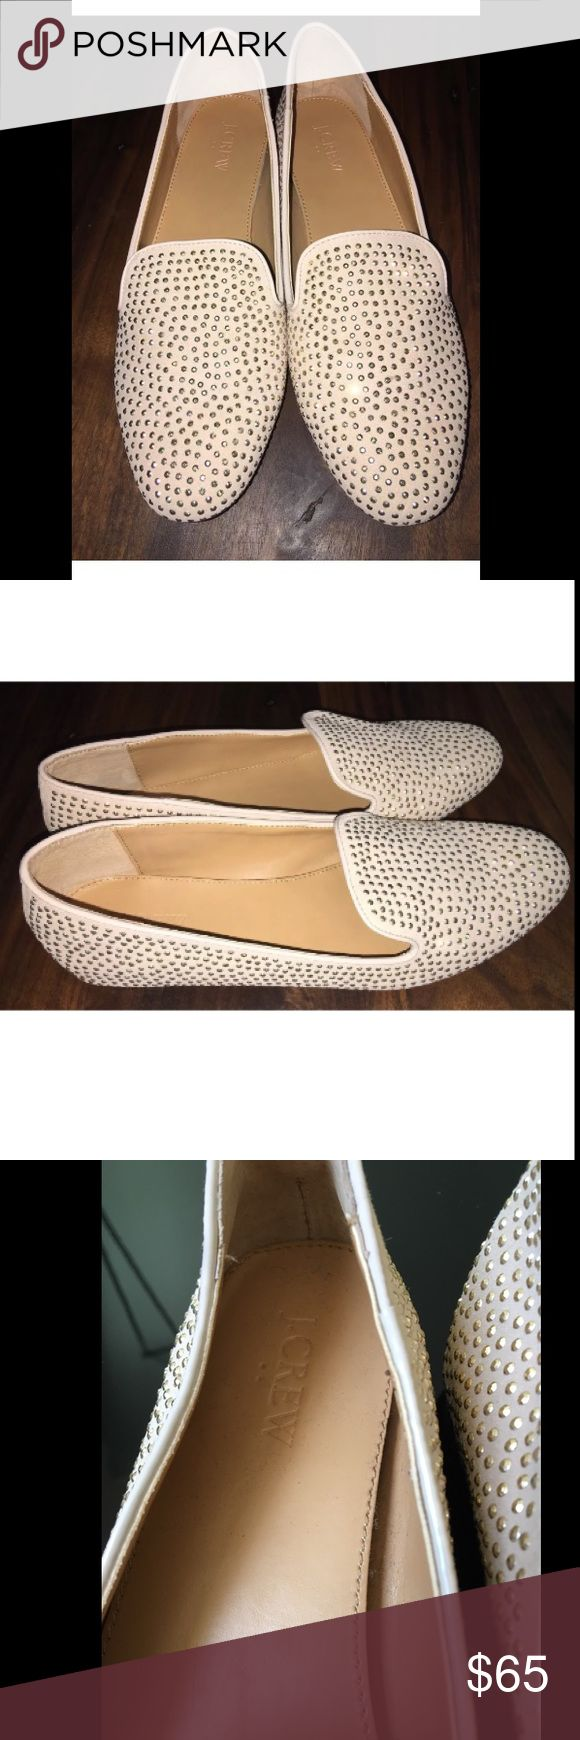 J crew Addie nude tan khaki studded loafers flats J crew Addie studded loafers. These are in GREAT condition as you can see in the pictures. Size 8.5 J. Crew Shoes Flats & Loafers